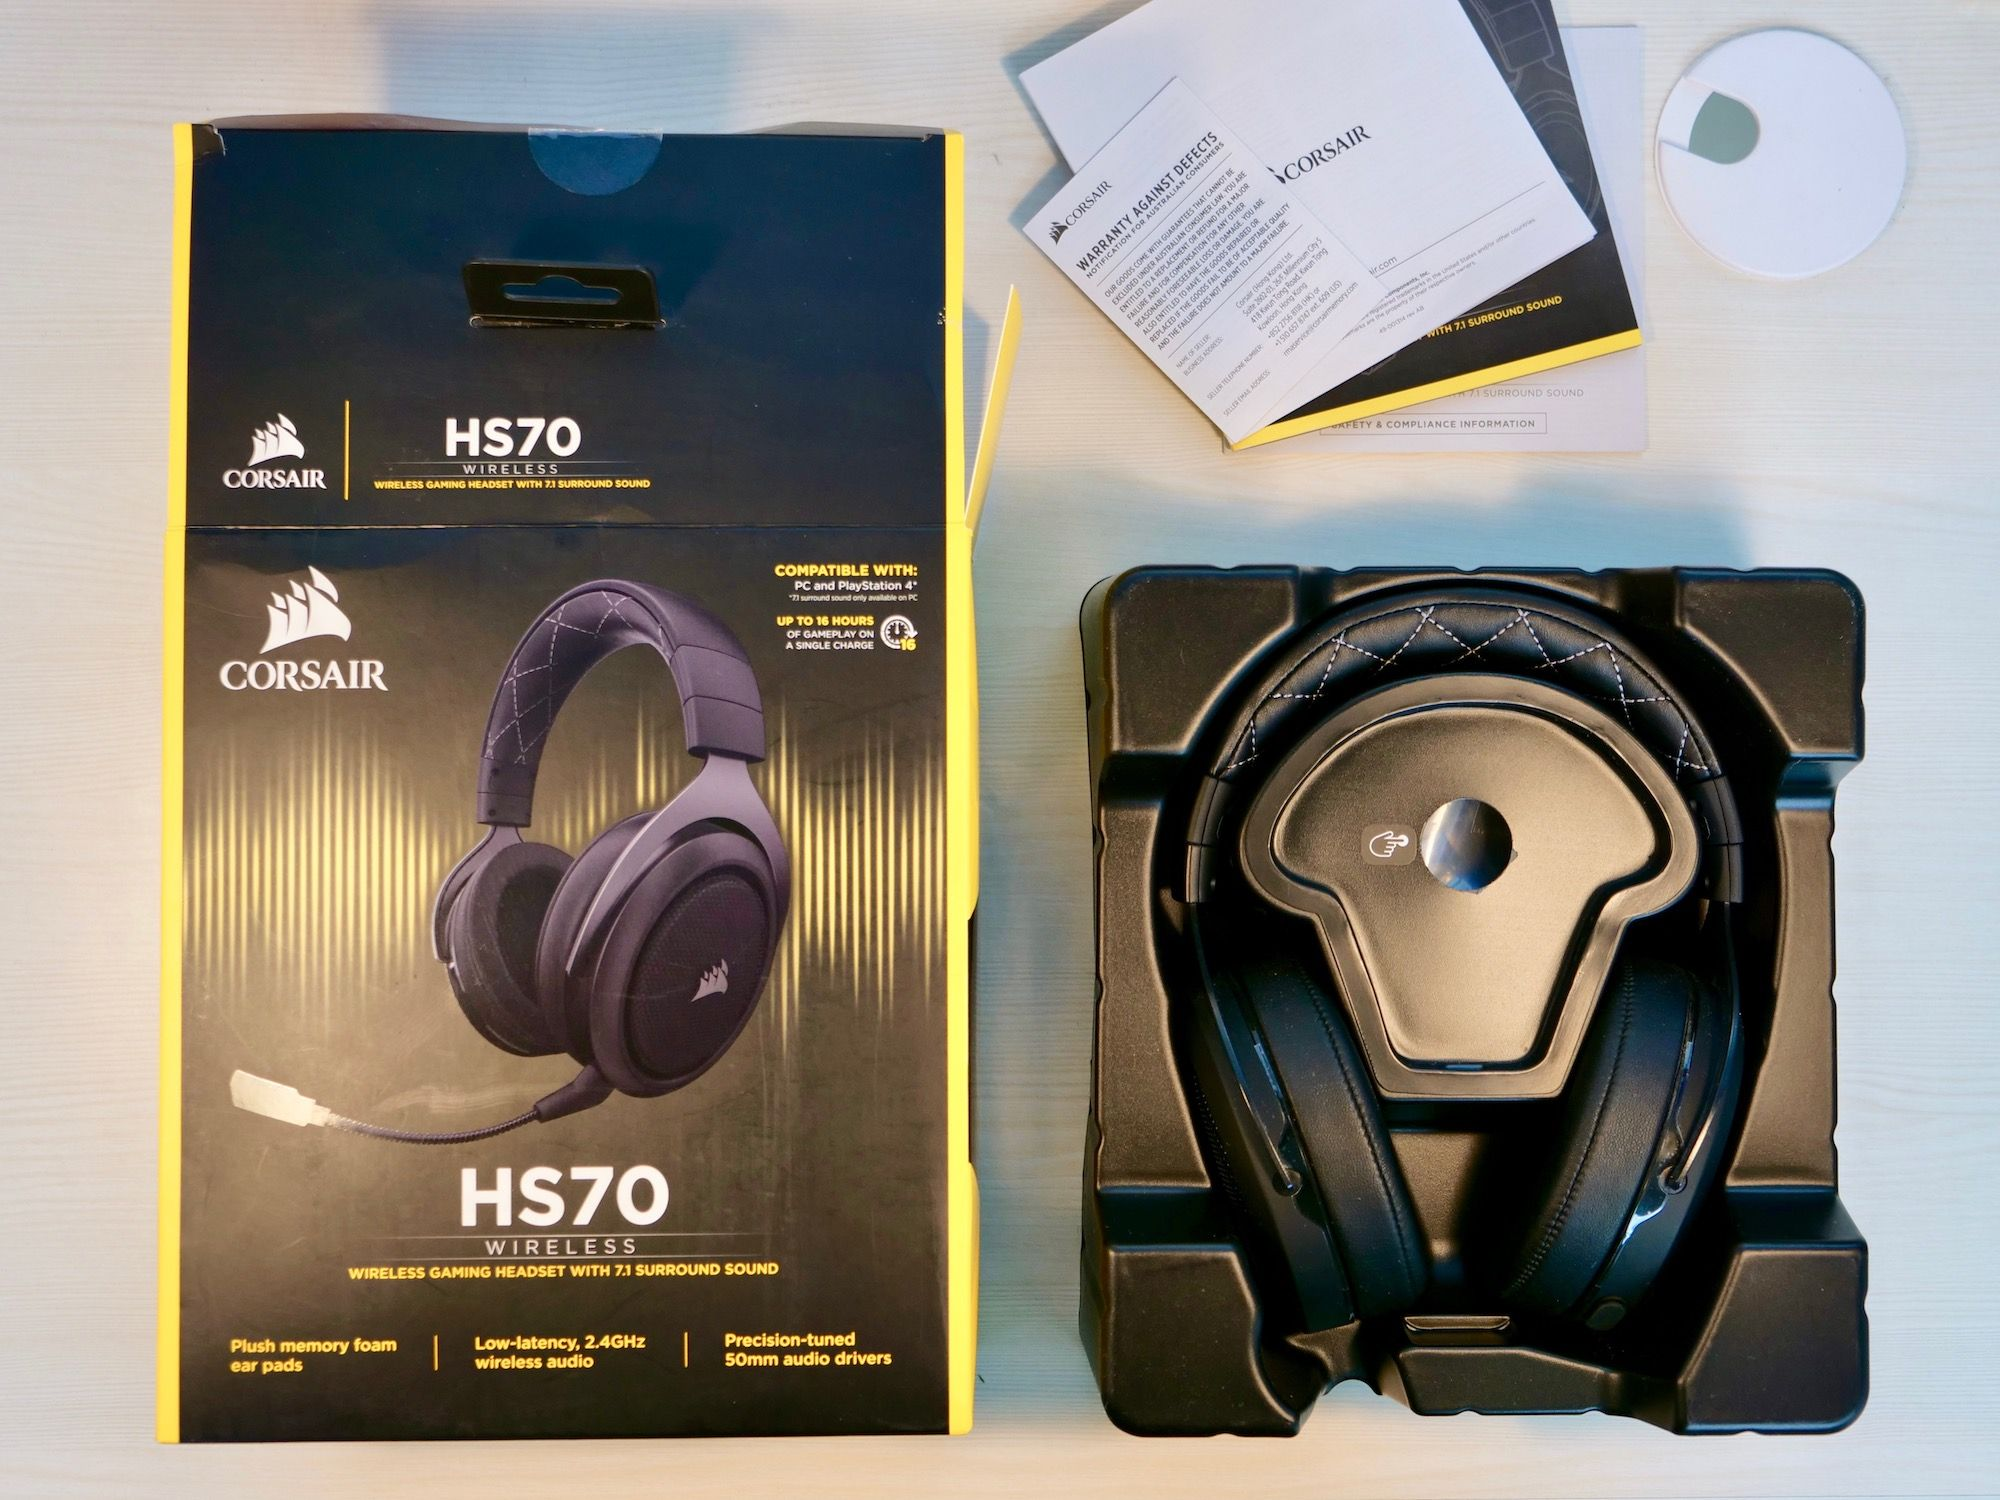 Corsair HS70 Review: Good Wireless Gaming Headset Under $100 - MySmartPrice